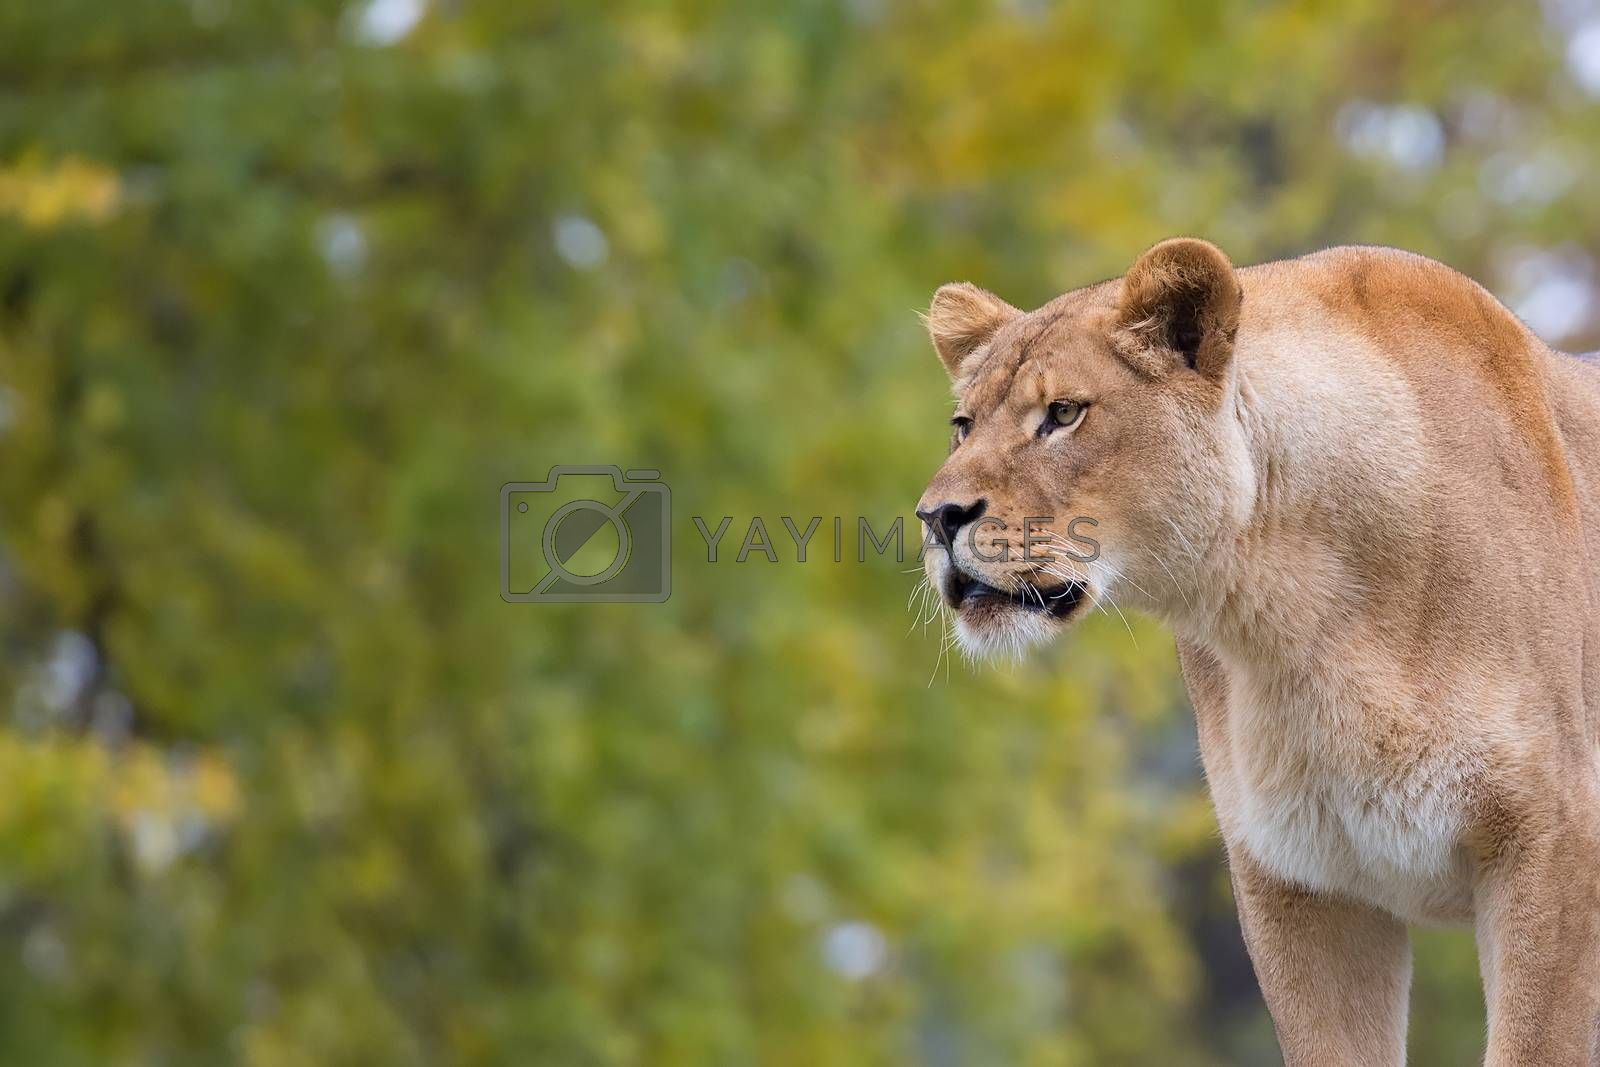 Lioness in the wild, a portrait in a clearing